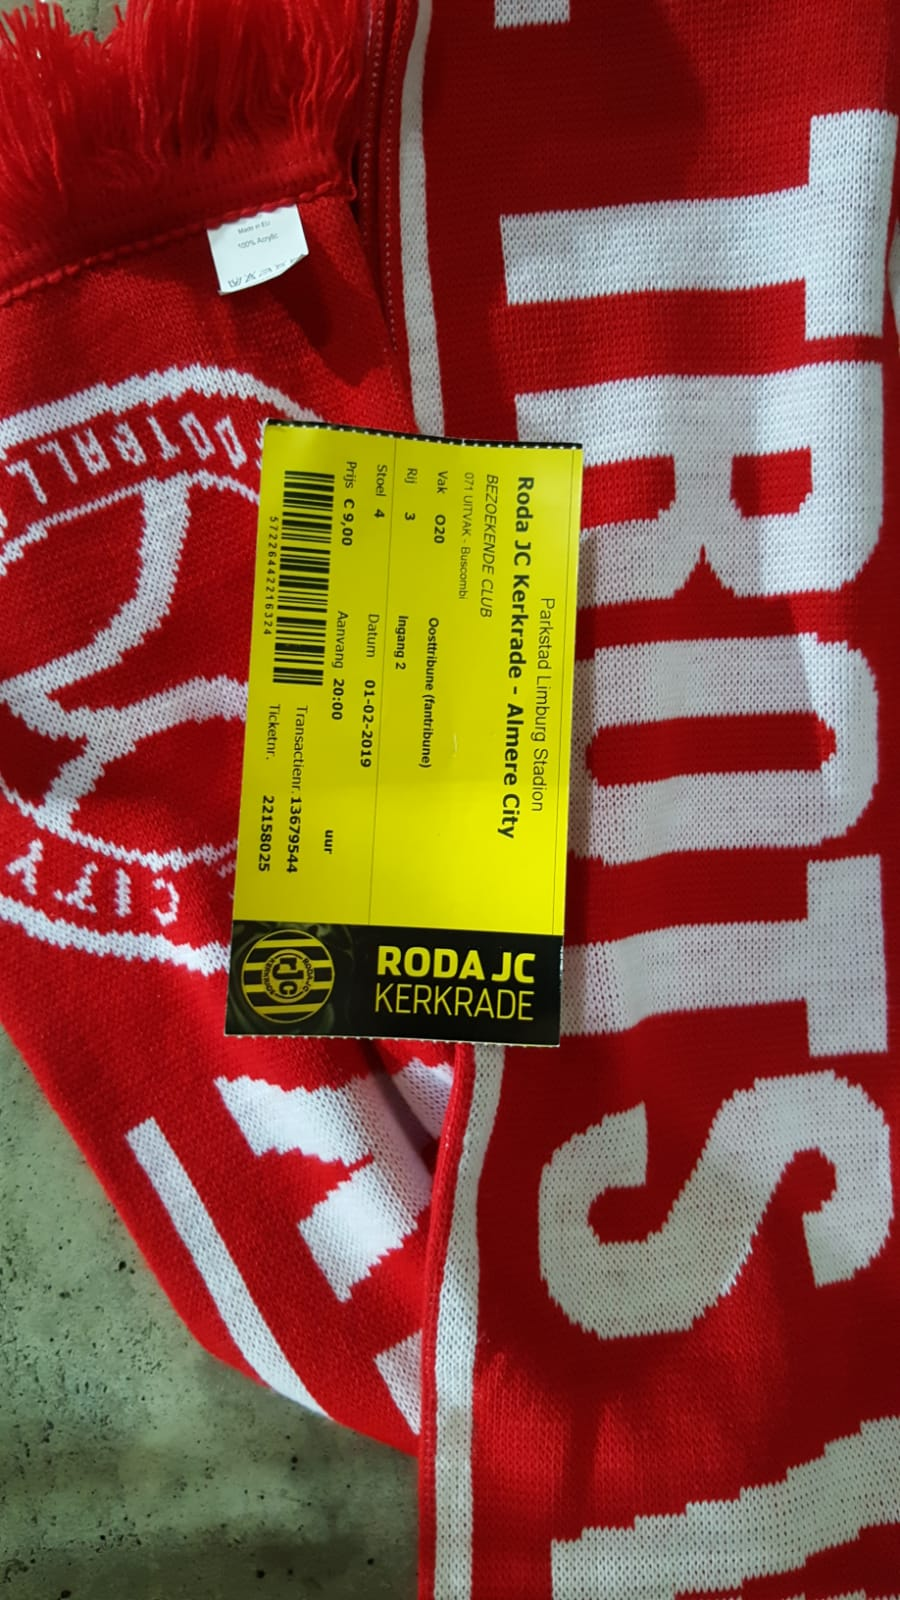 Away Day: Roda JC Kerkrade